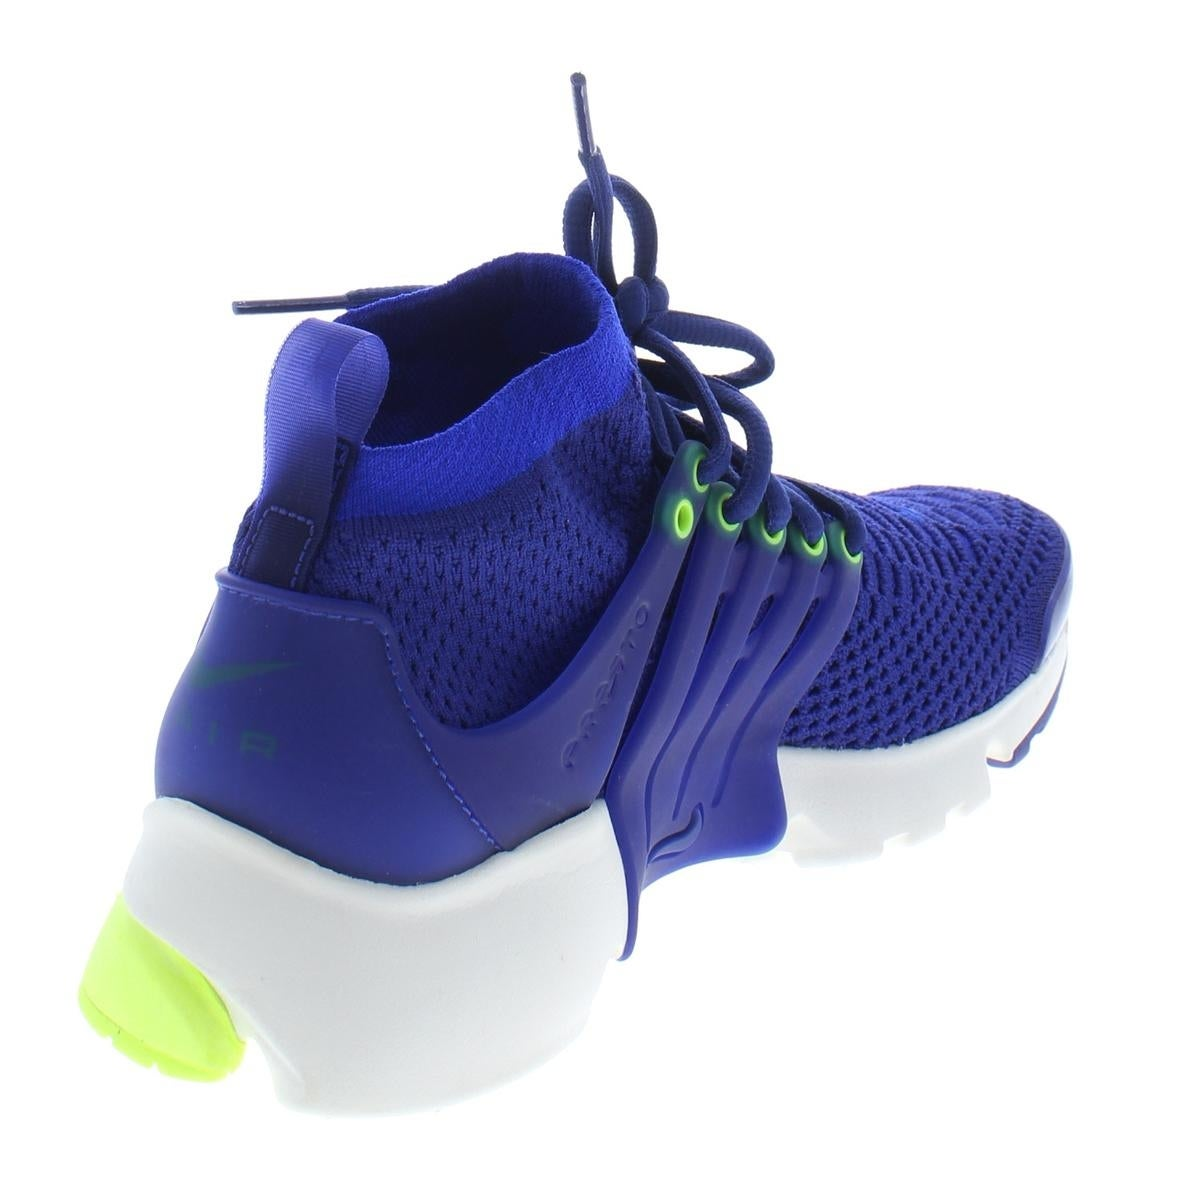 newest 55d4d bfb3b Shop Nike Womens Air Presto Flyknit Ultra Sneakers High Top Lace Up - Free  Shipping Today - Overstock - 24030642